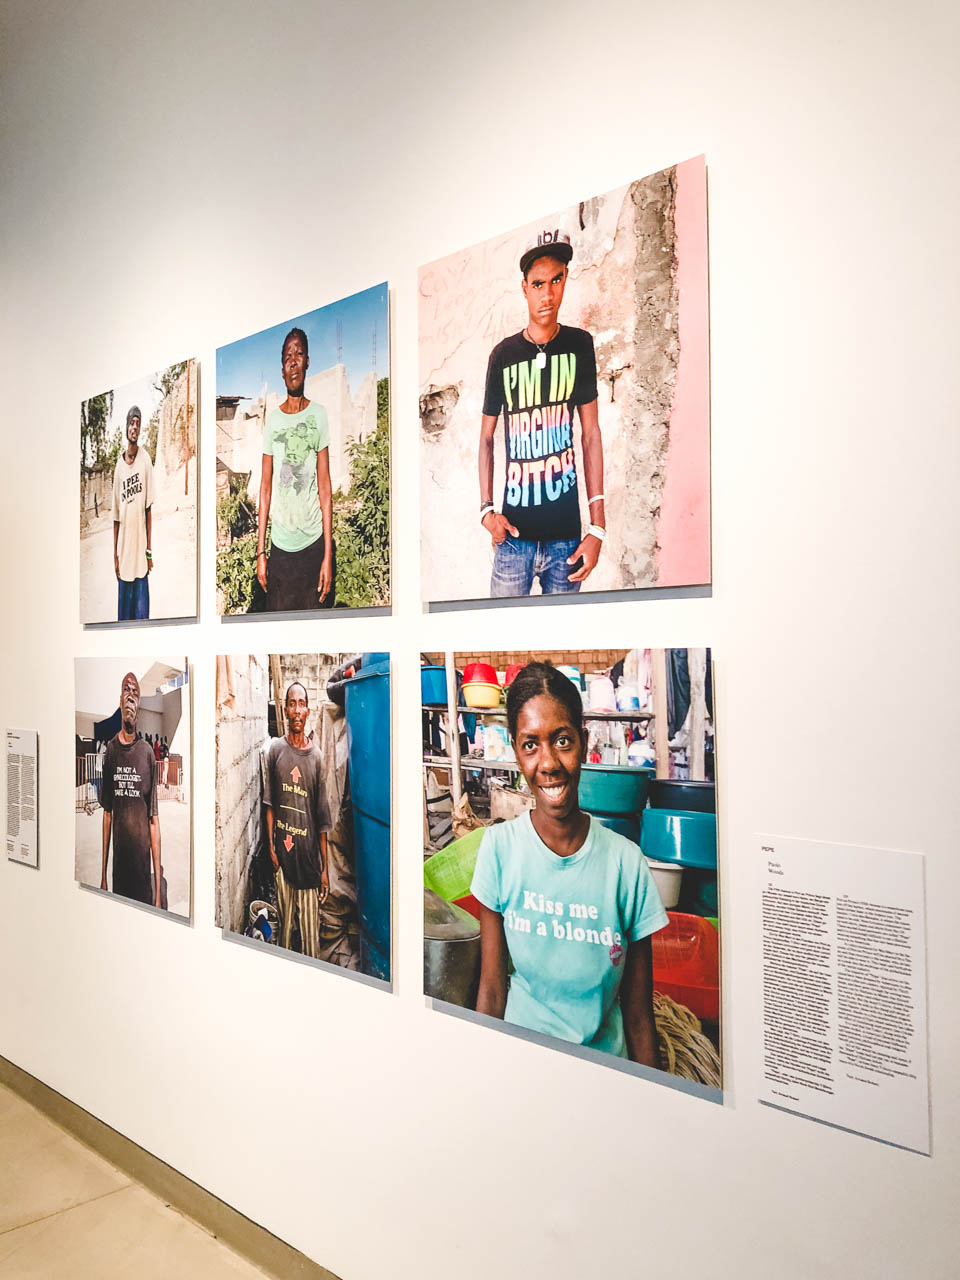 Photos of Haitians wearing T-shirts with silly slogans on display at The Dark Sides of Fashion exhibition